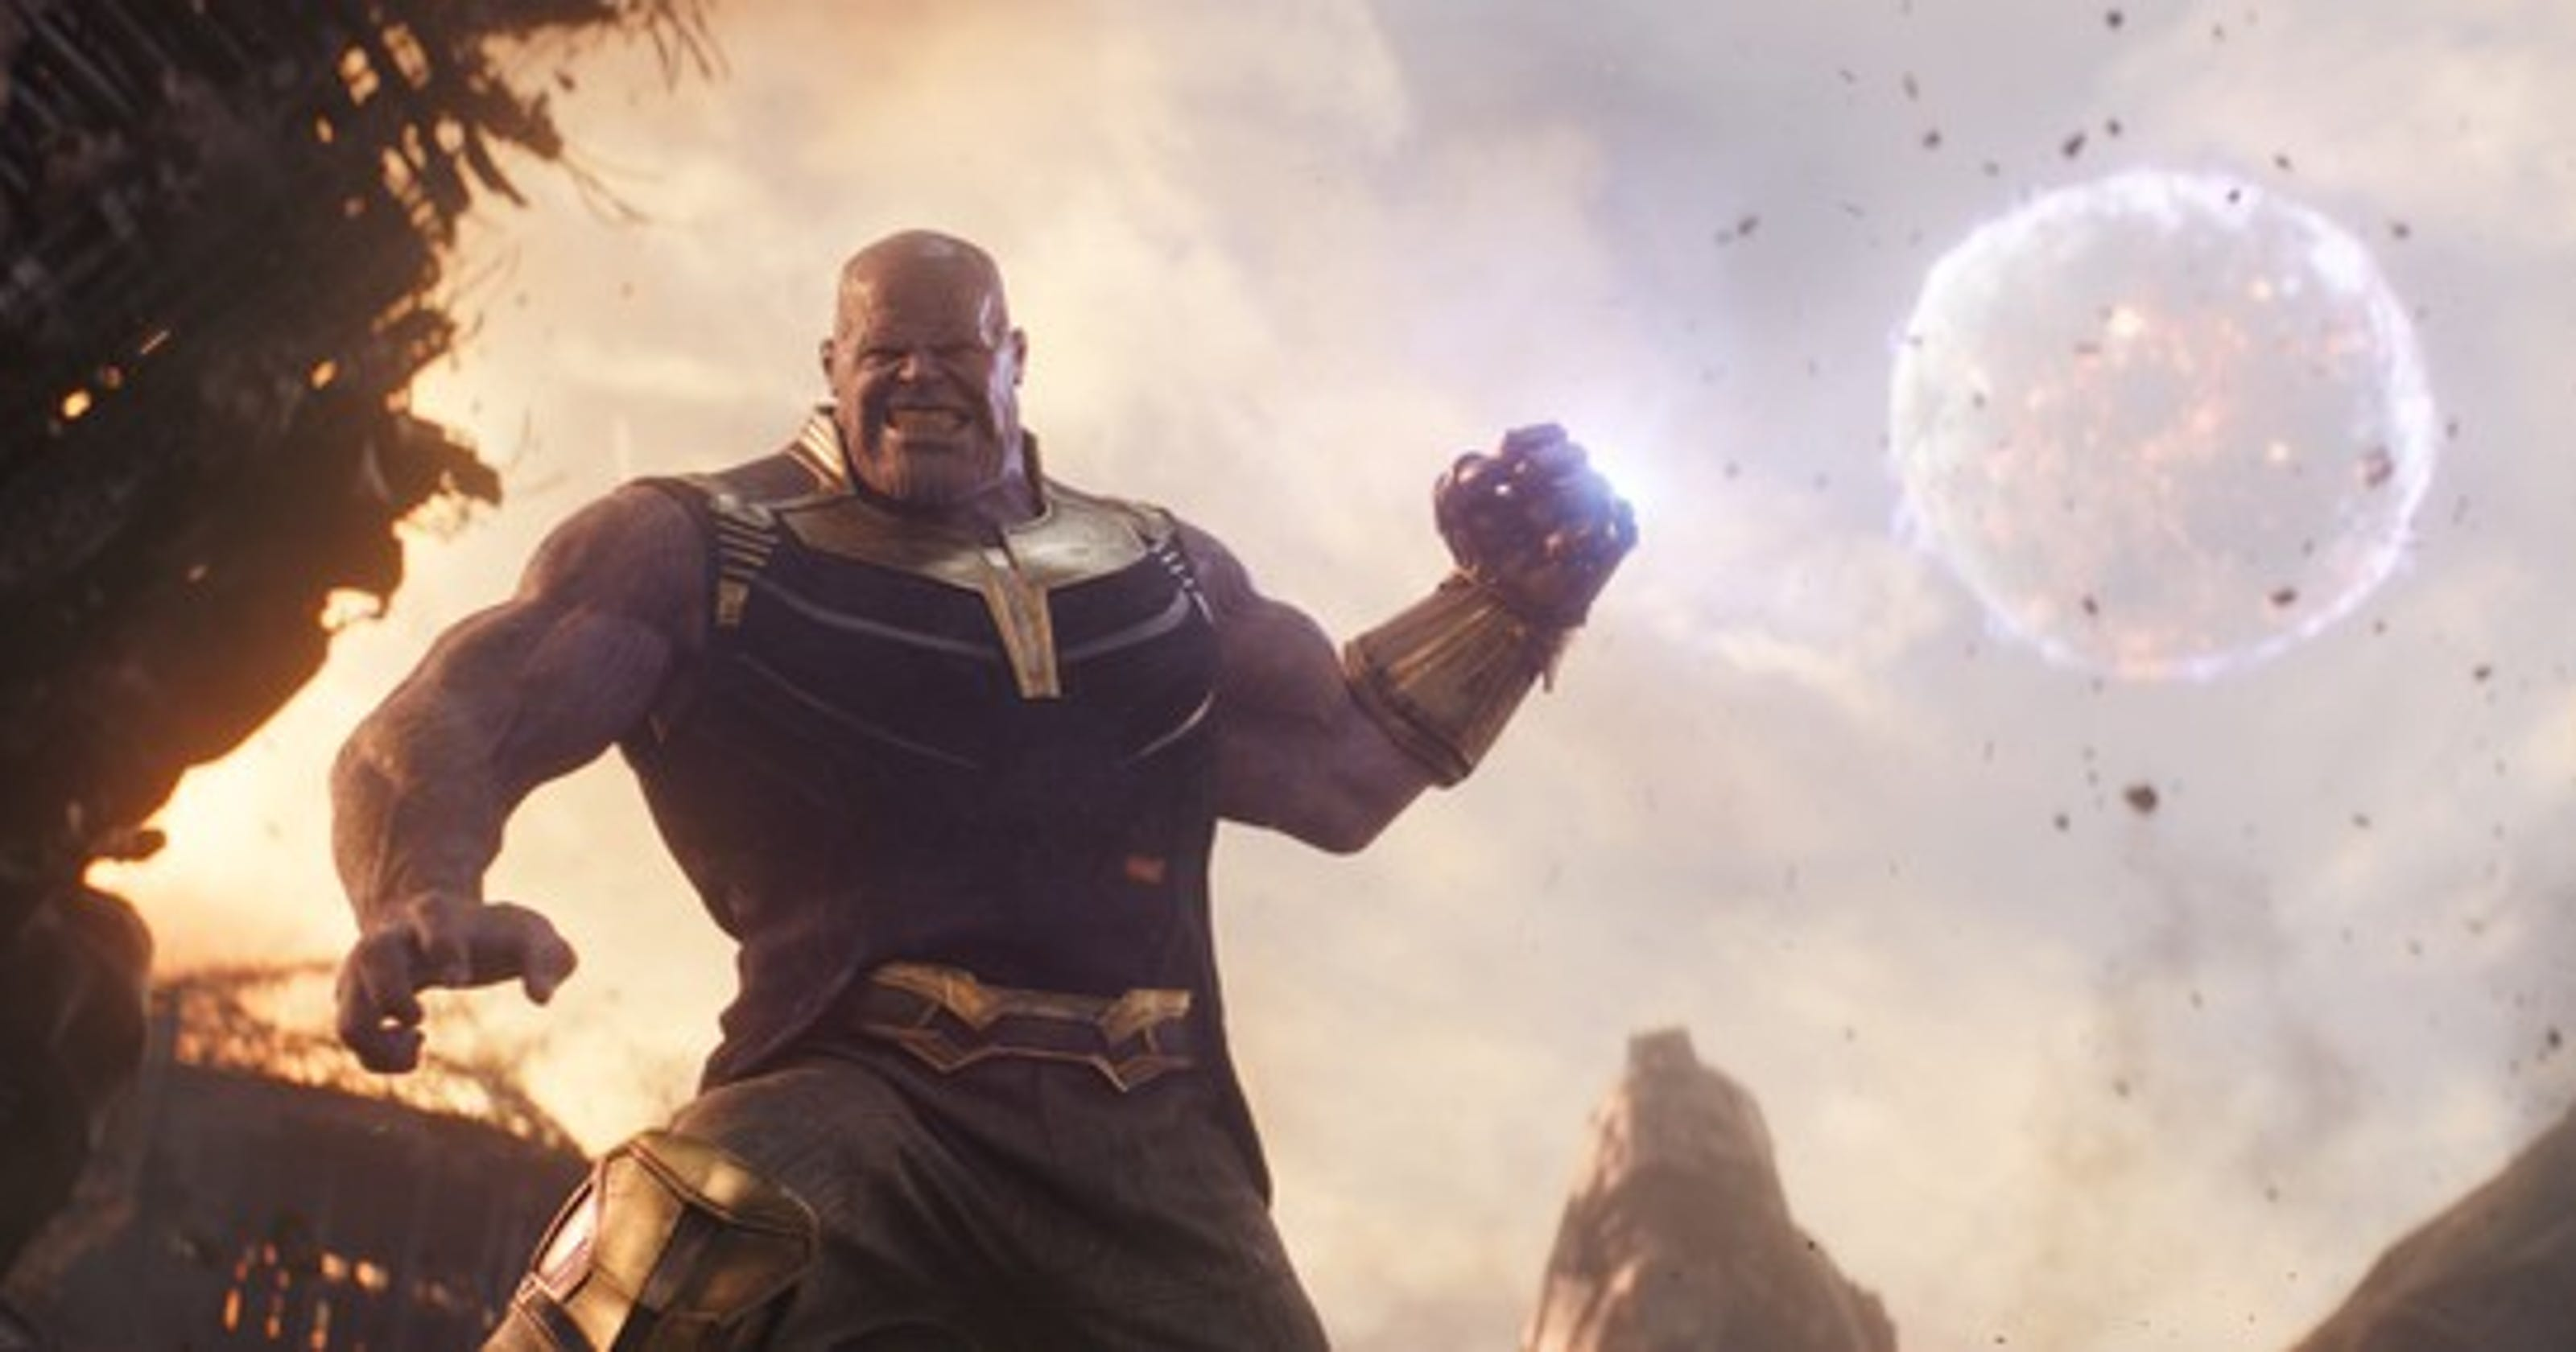 eb5591a2f 'Avengers Endgame': Google 'Thanos' to find gauntlet and fun surprise